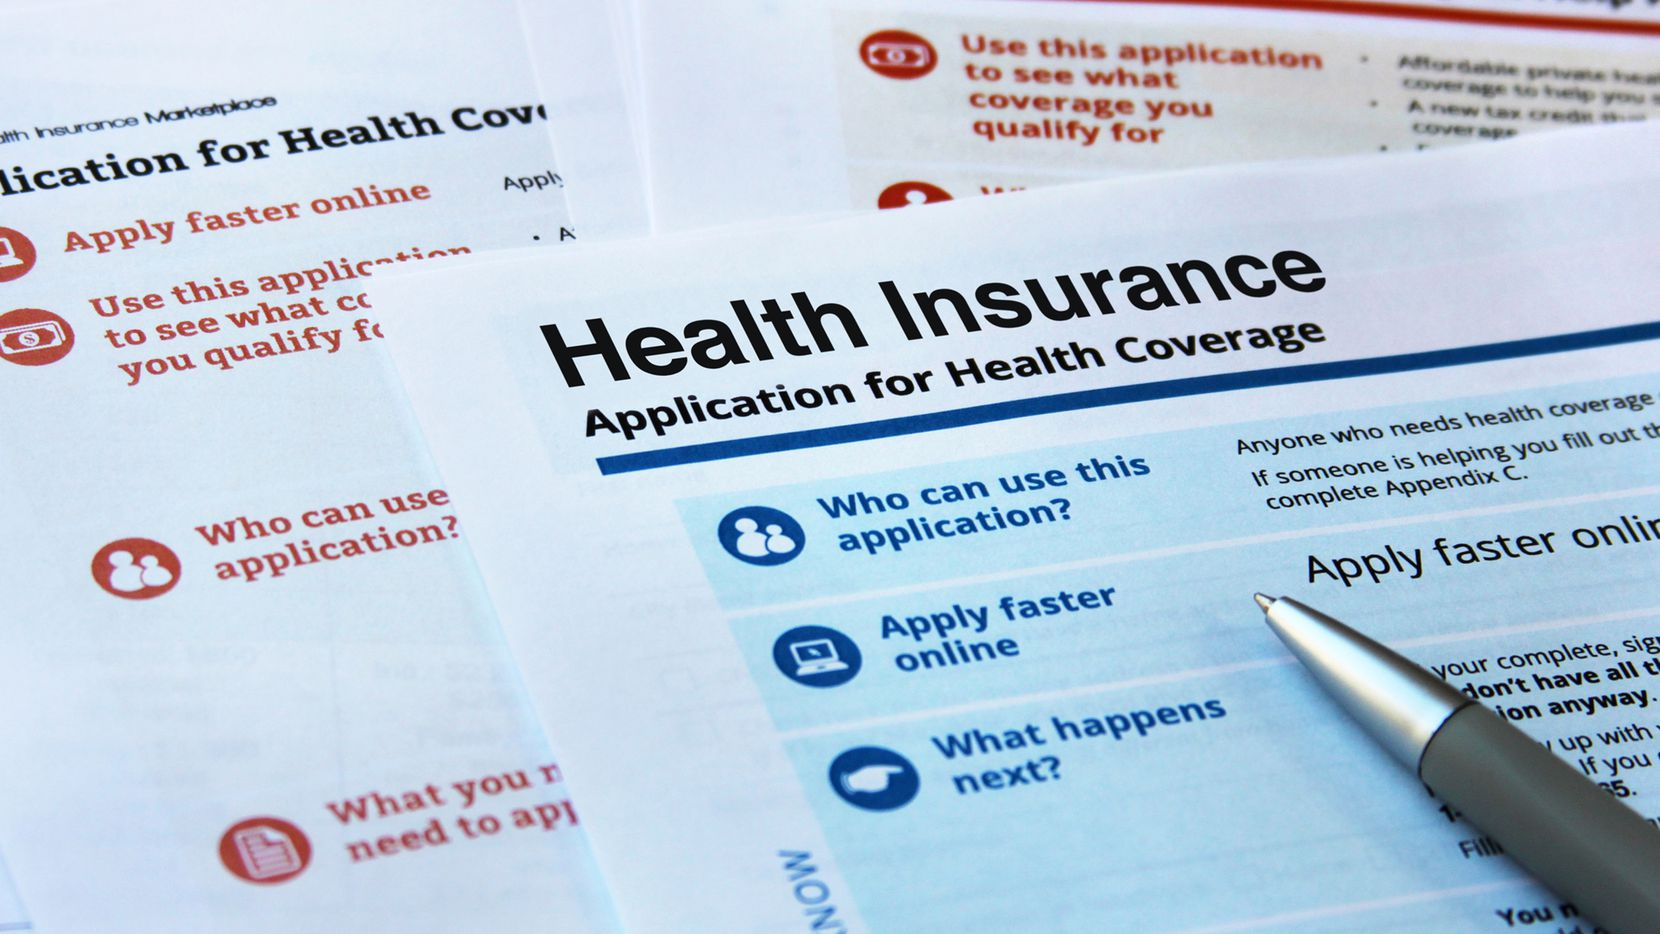 Open enrollment for health insurance coverage is beginning for millions of Americans.